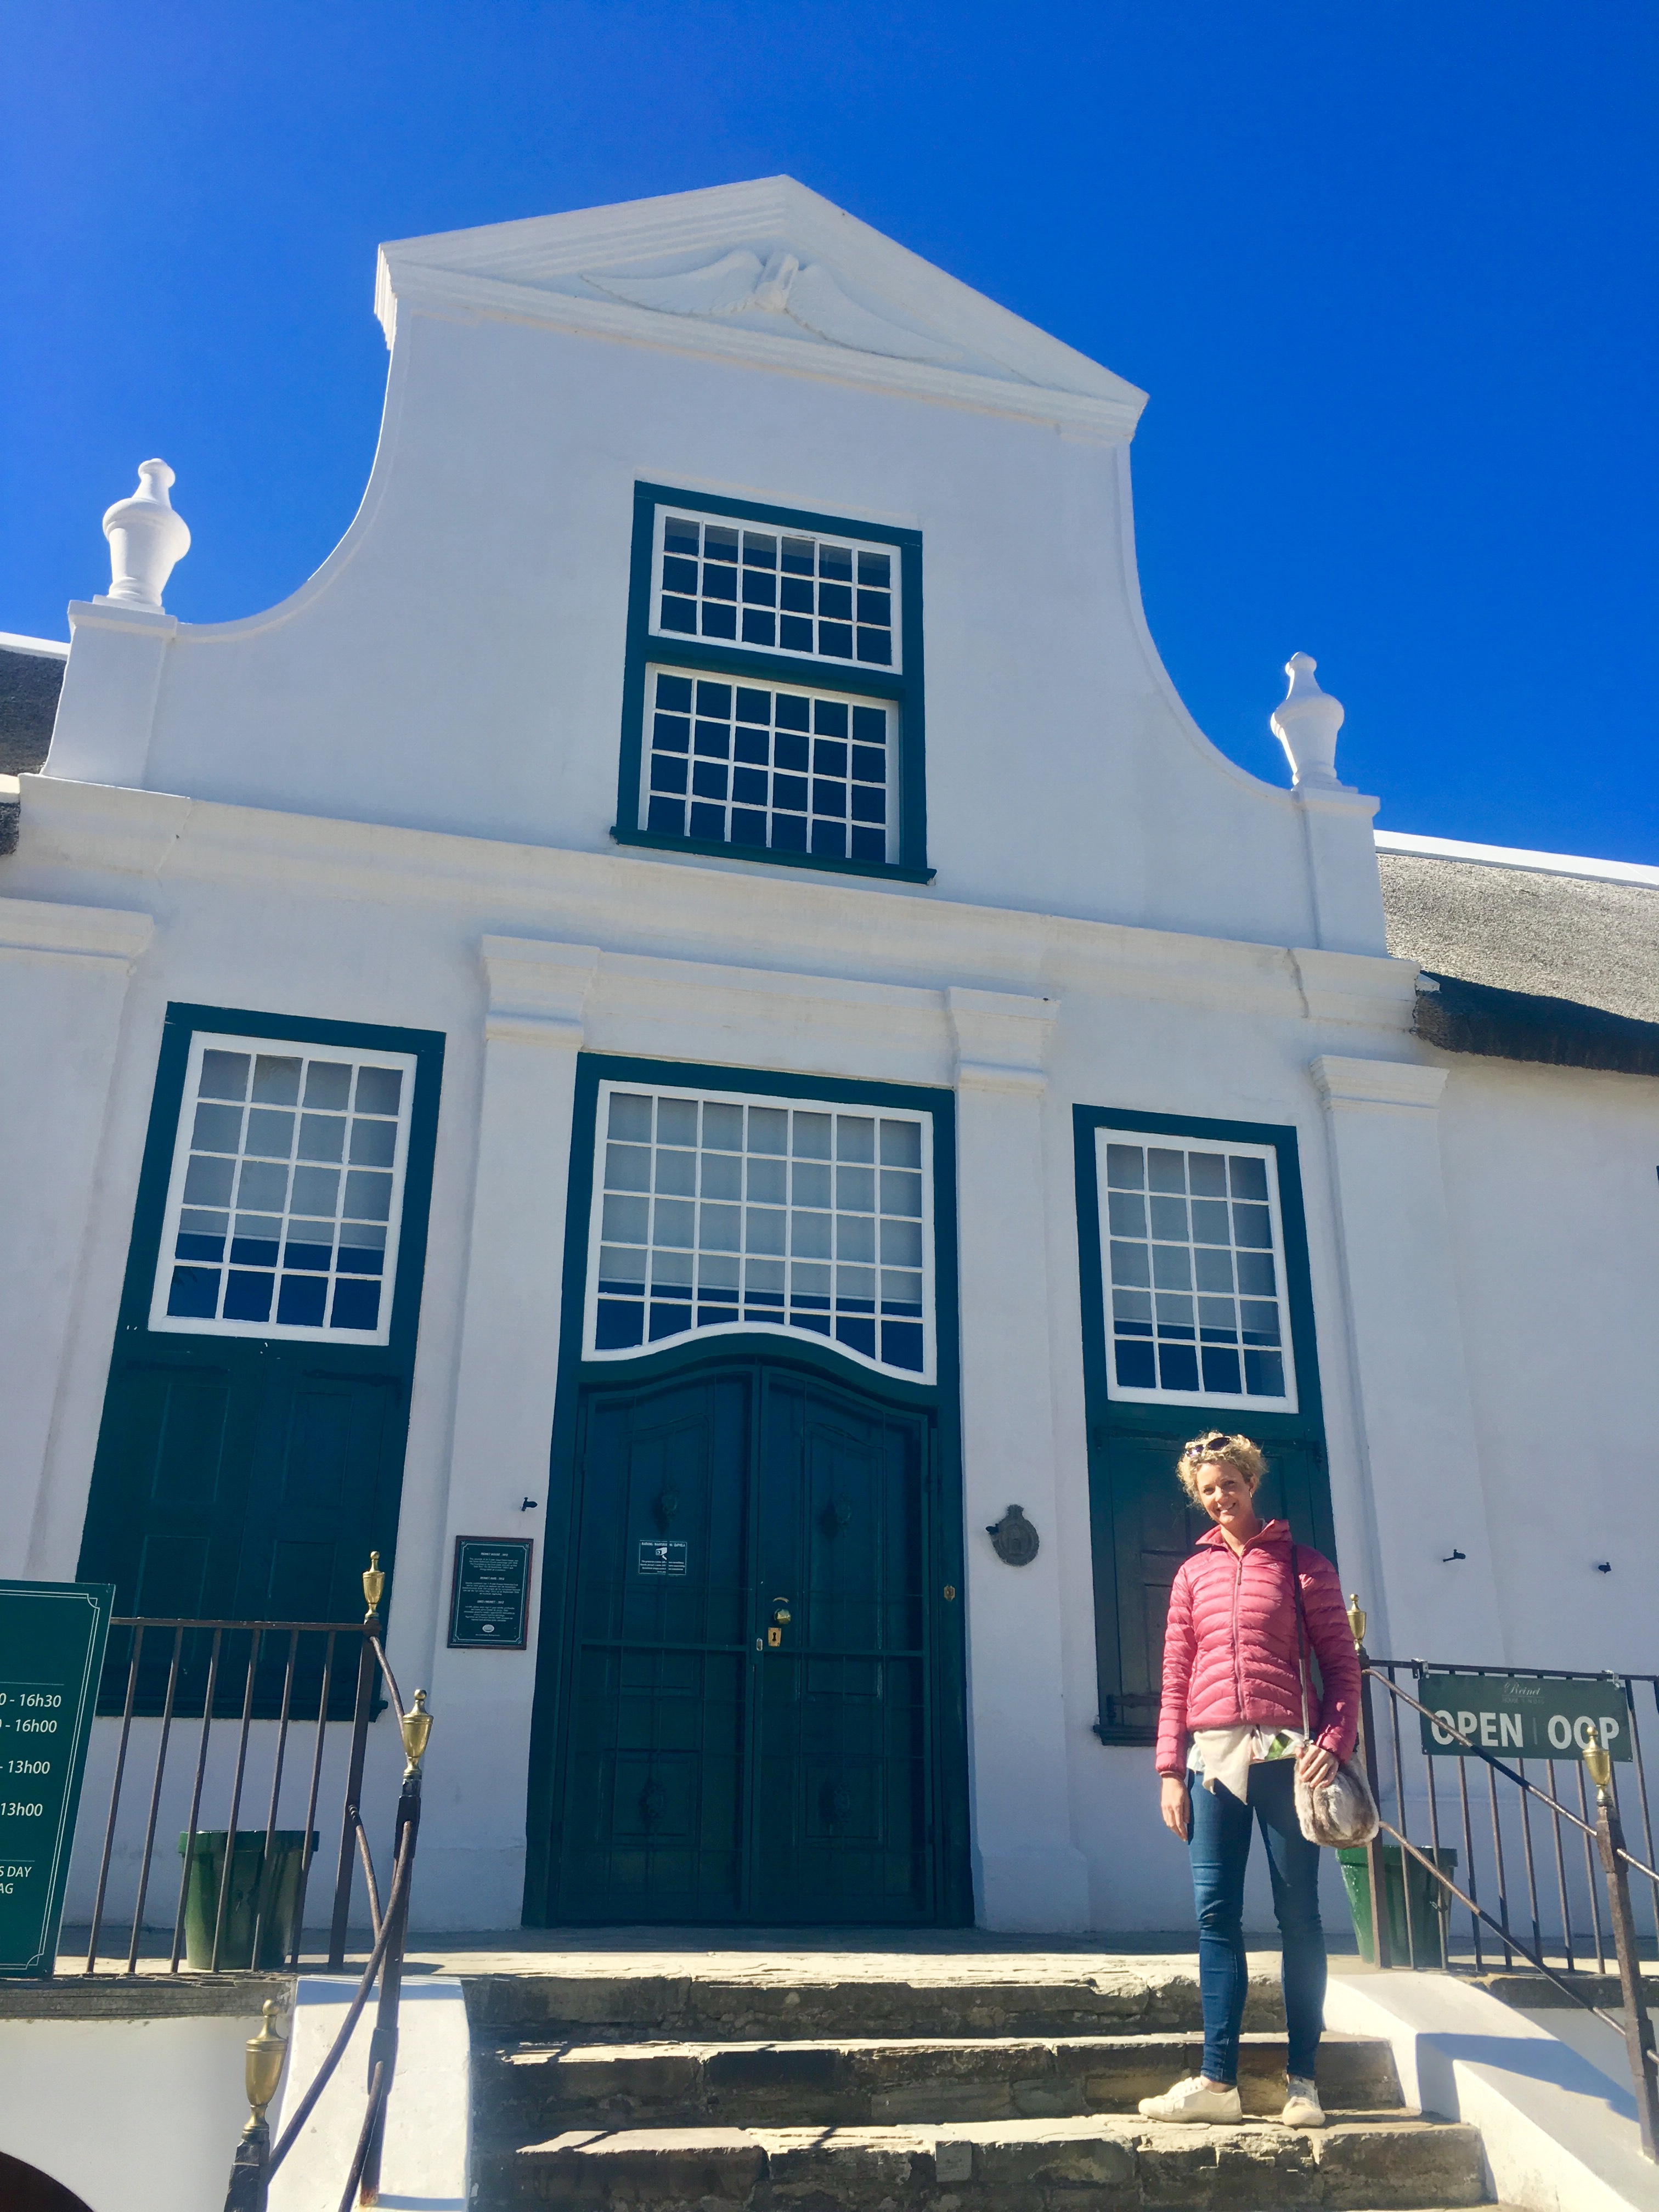 The historic Reinet House in Graaff-Reinet, once the home of legendary preacher Andrew Murrey.